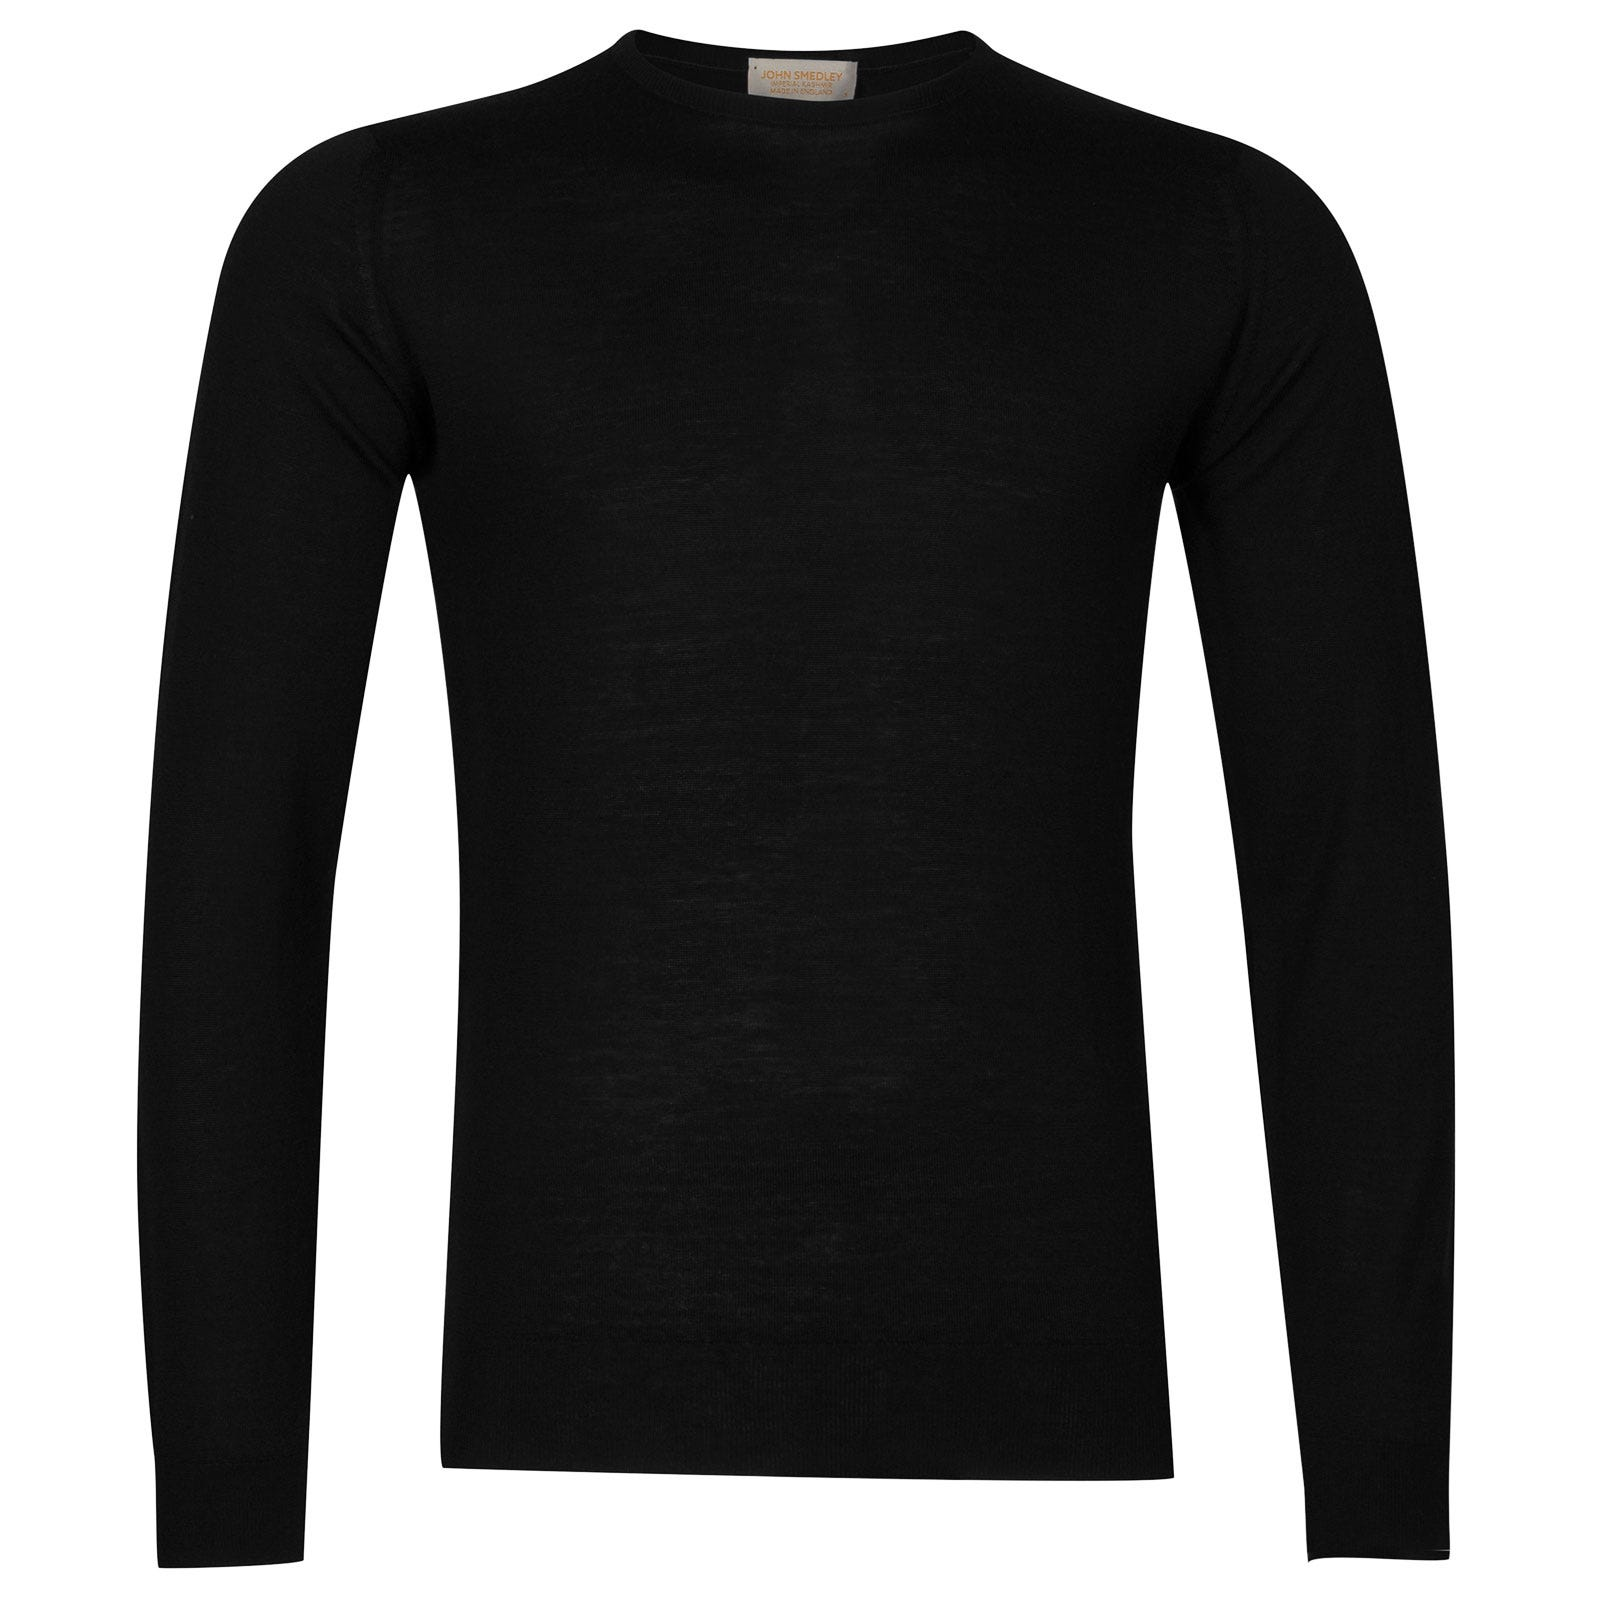 John Smedley sherman Merino Wool and Cashmere Pullover in Black-S